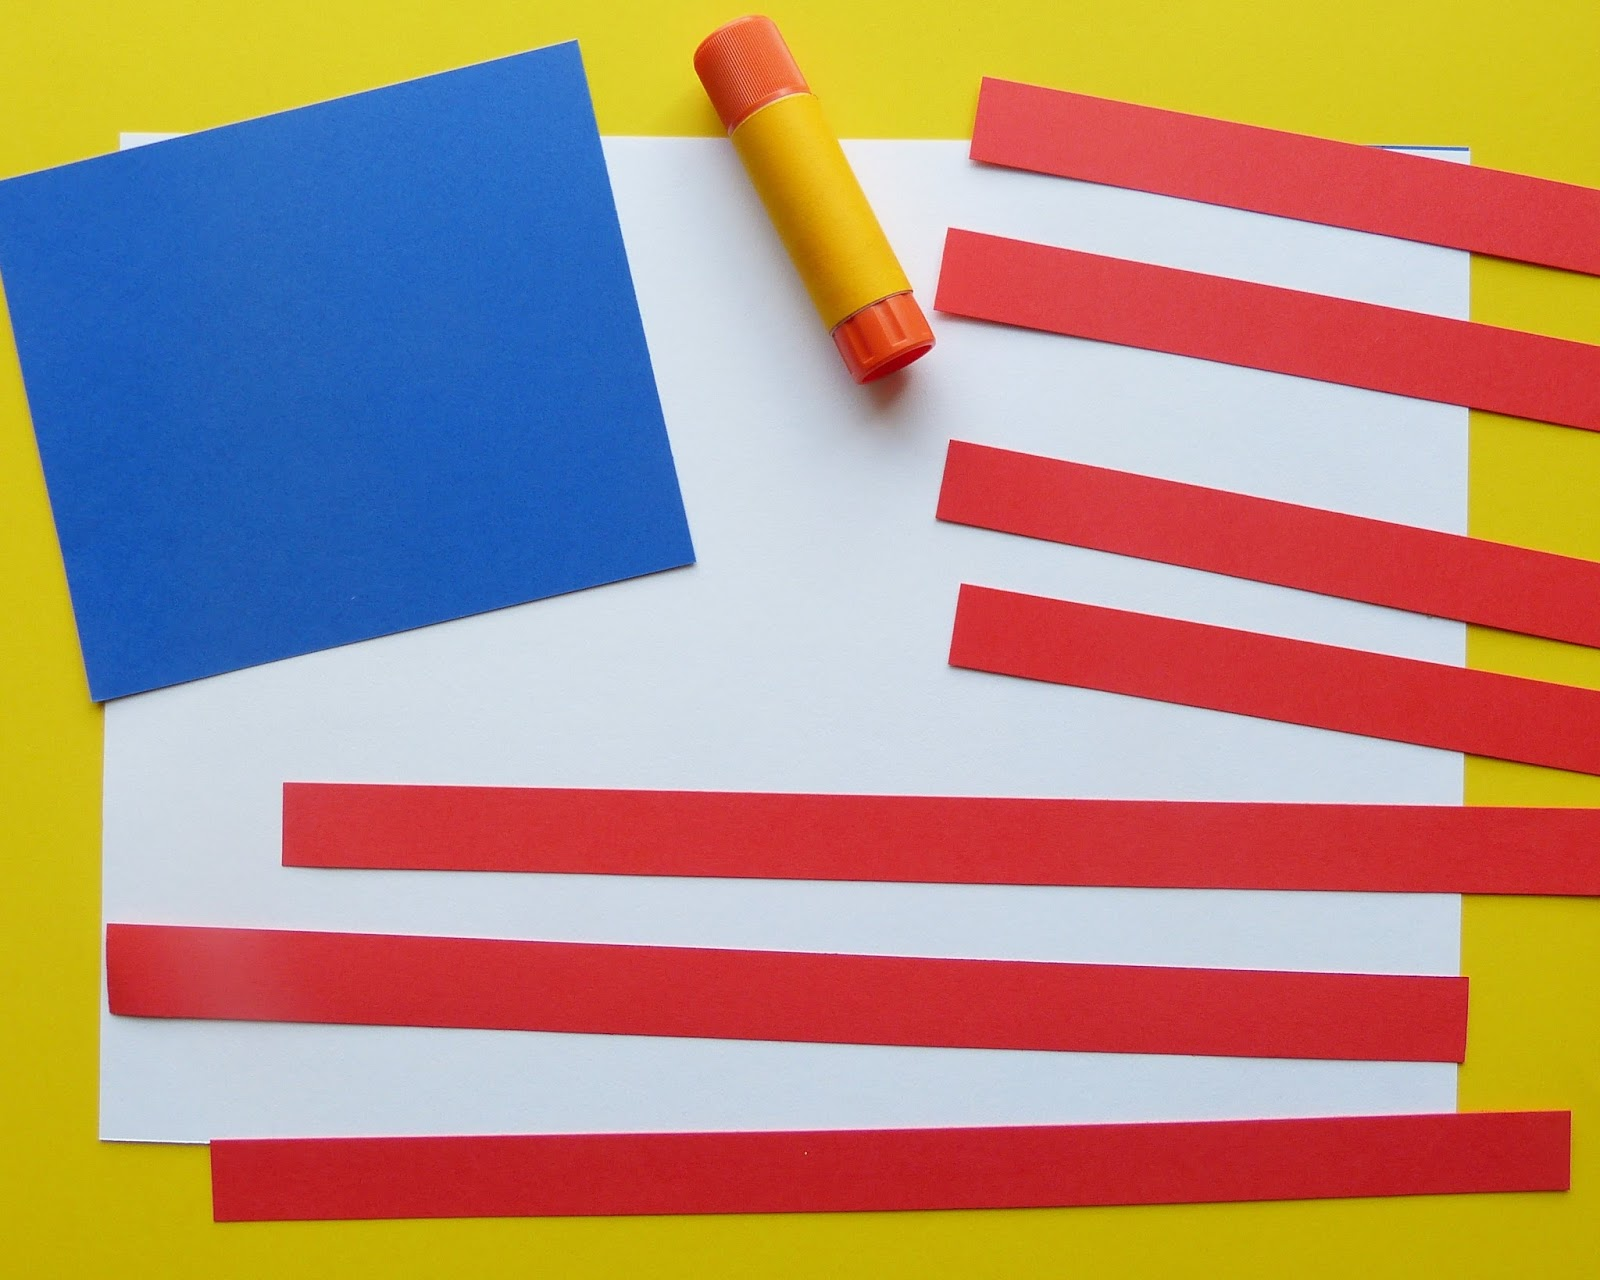 the construction of the american flag history essay Free essay: burning the american flag the american flag consists of thirteen   original colonies of the united states of america and the stars represent the fifty   you see it in schools, government building, stores and hanging in our homes.